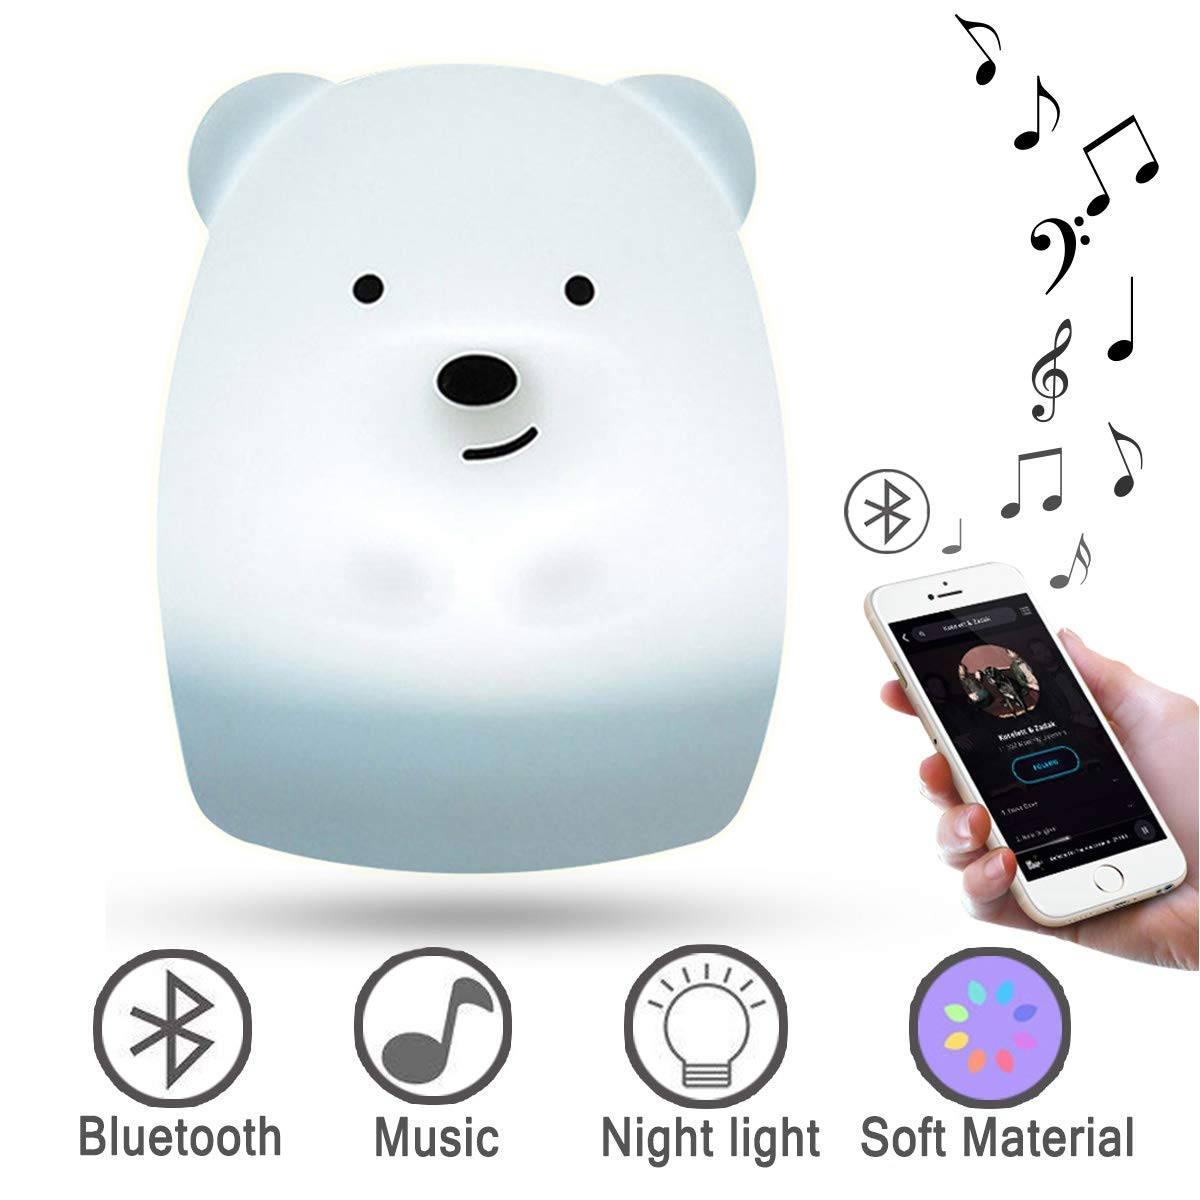 Bluetooth Music Nursery Night Lights for Kids,LED Baby Bedside Lamp -with Sound Portable and Rechargeable Infant or Toddler Cool Color Changing Nightlight